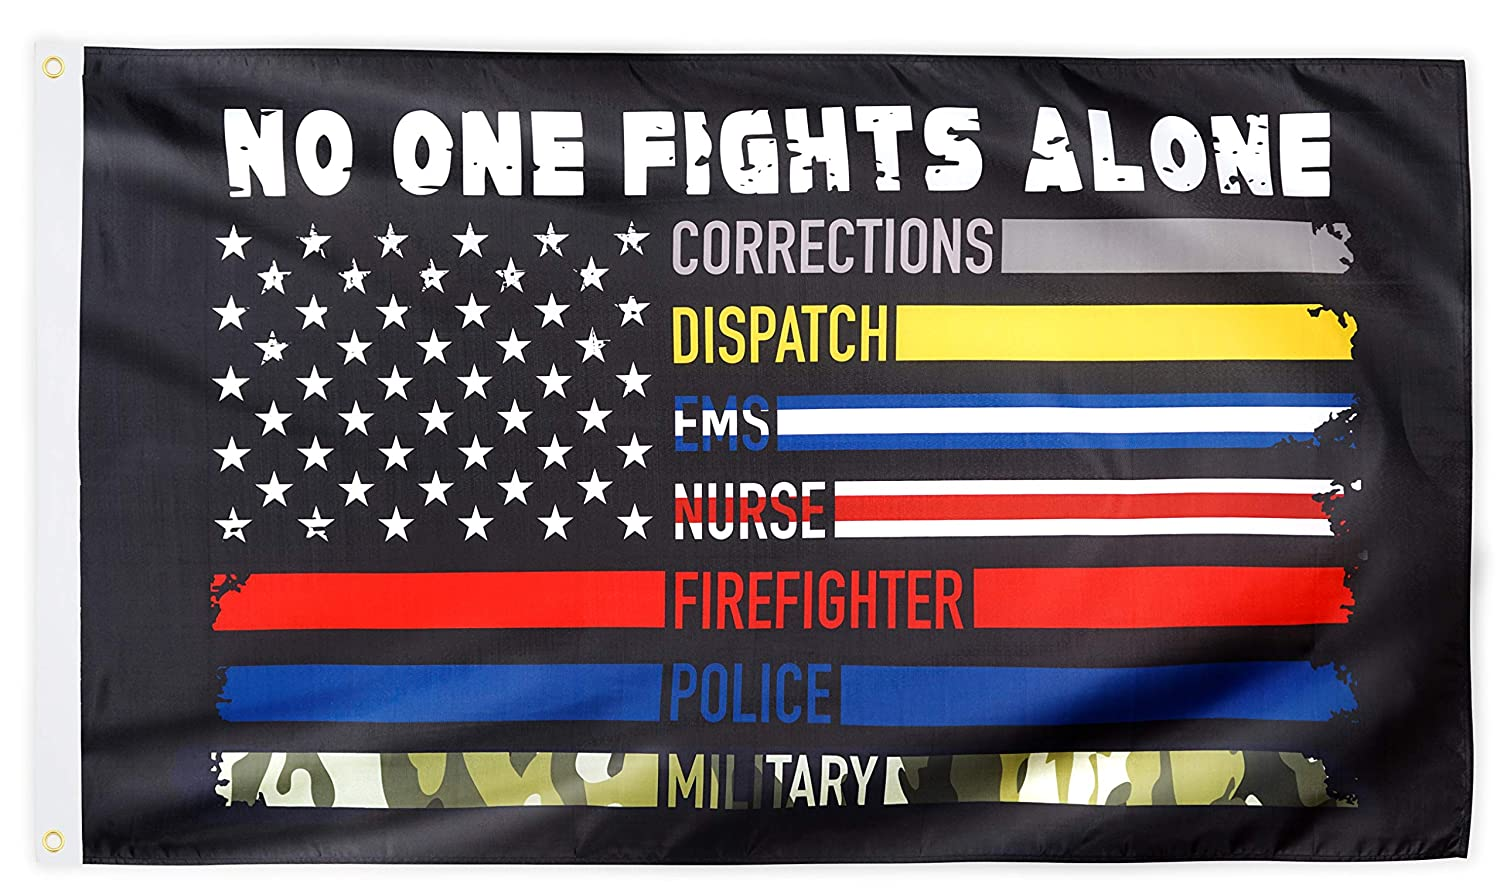 XIFAN No One Fights Alone Flag Heavyweight 2X Thick US American Flag First Responders Multi Thin Line 100D Polyester Flag Brass Grommets Outdoor Banner Decoration 3 X 5 FT